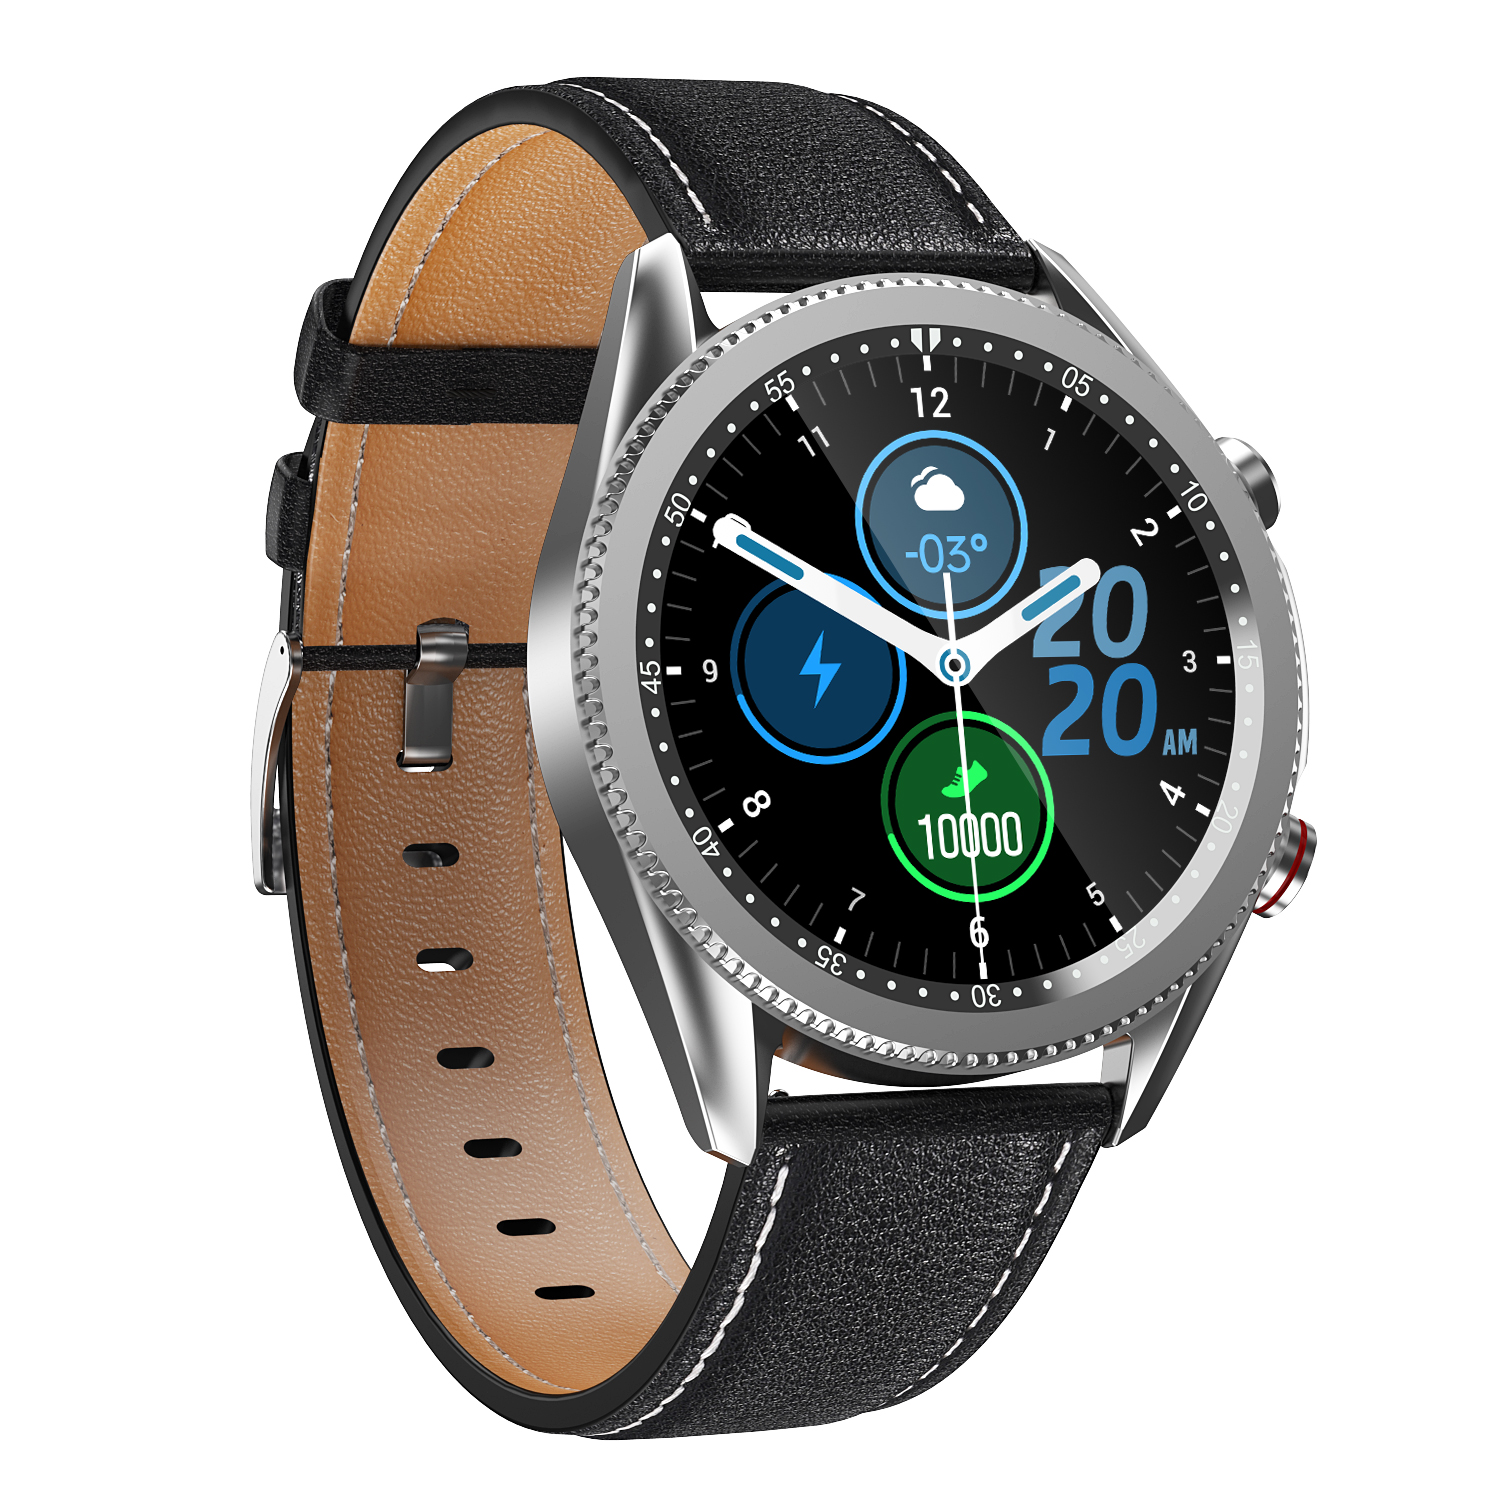 2020 sports smart watch men Bluetooth call Full touch screen Health monitoring women watches waterproof  for apple Android